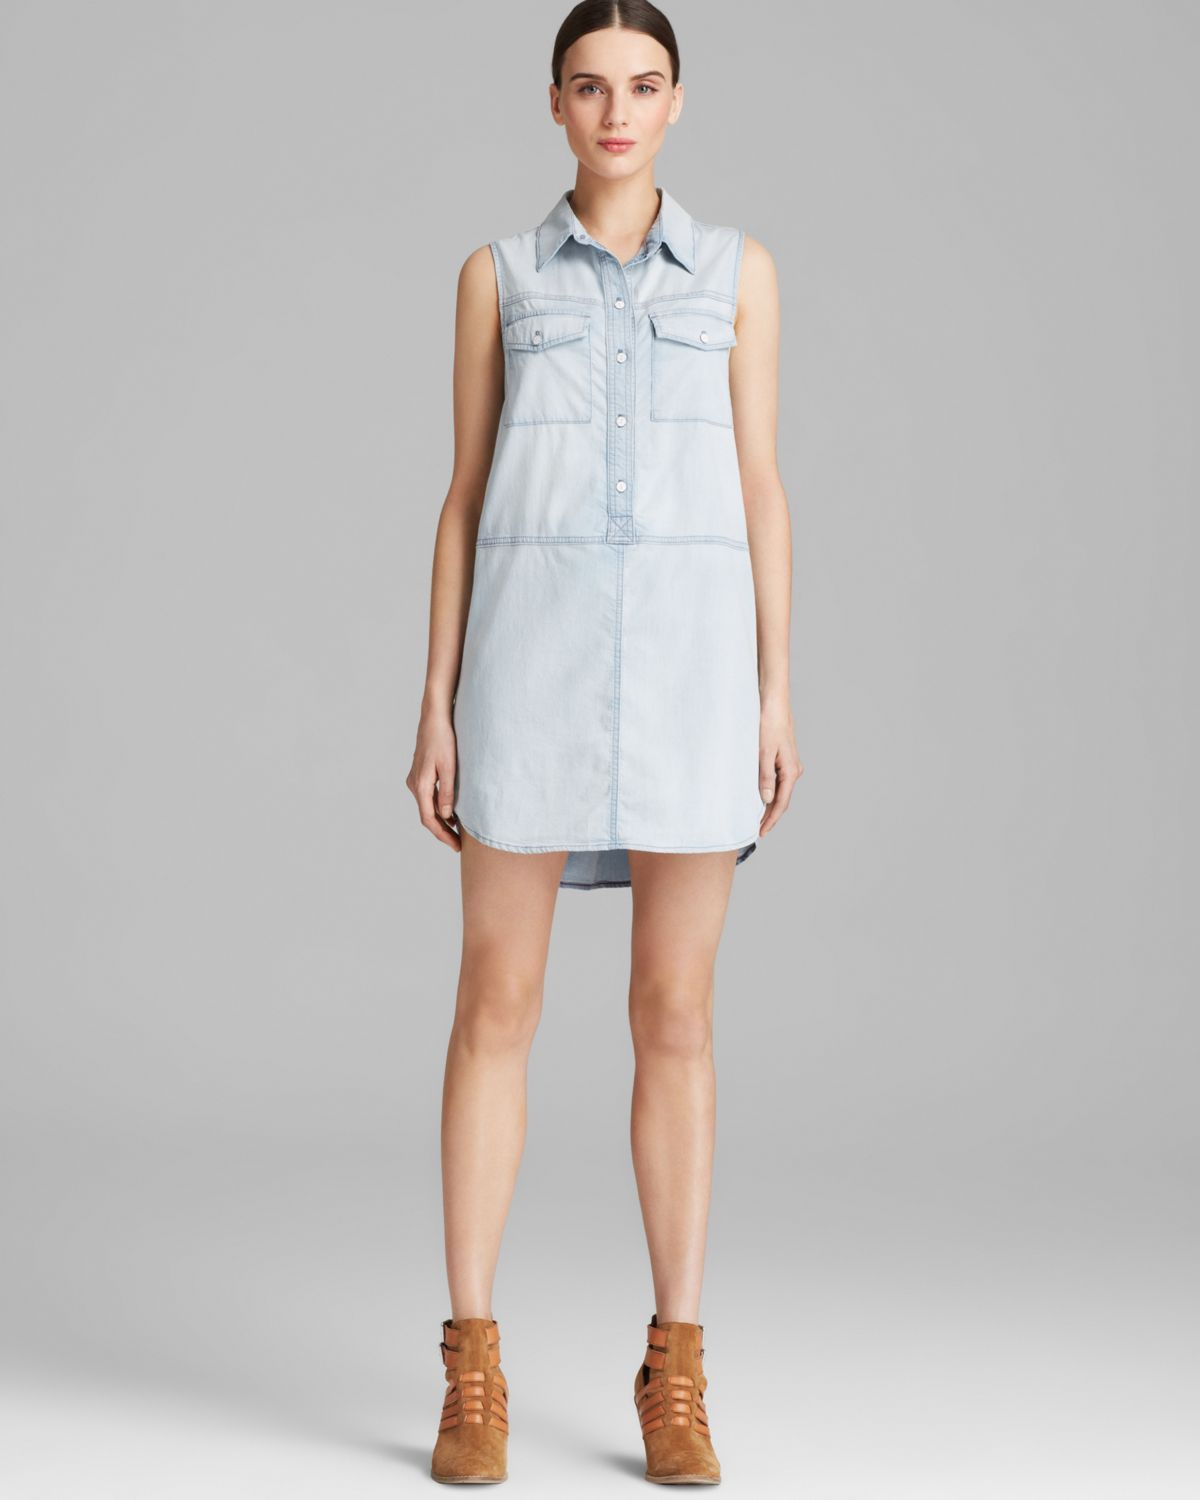 model boyish dress pendek dari bahan blue jeans